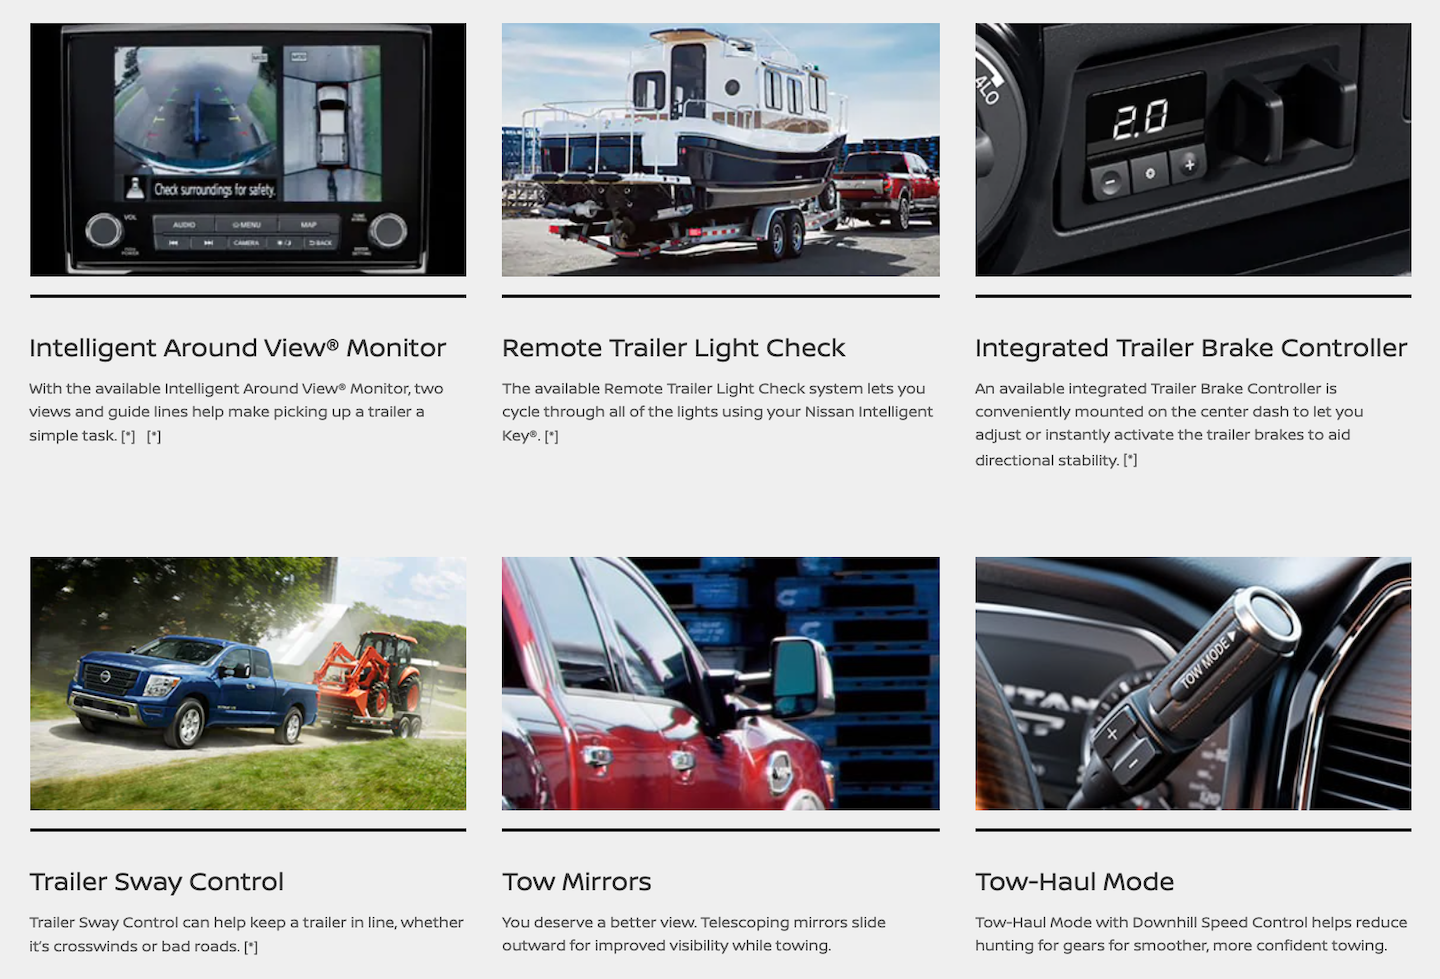 A description of the various towing features included with the Nissan Titan.